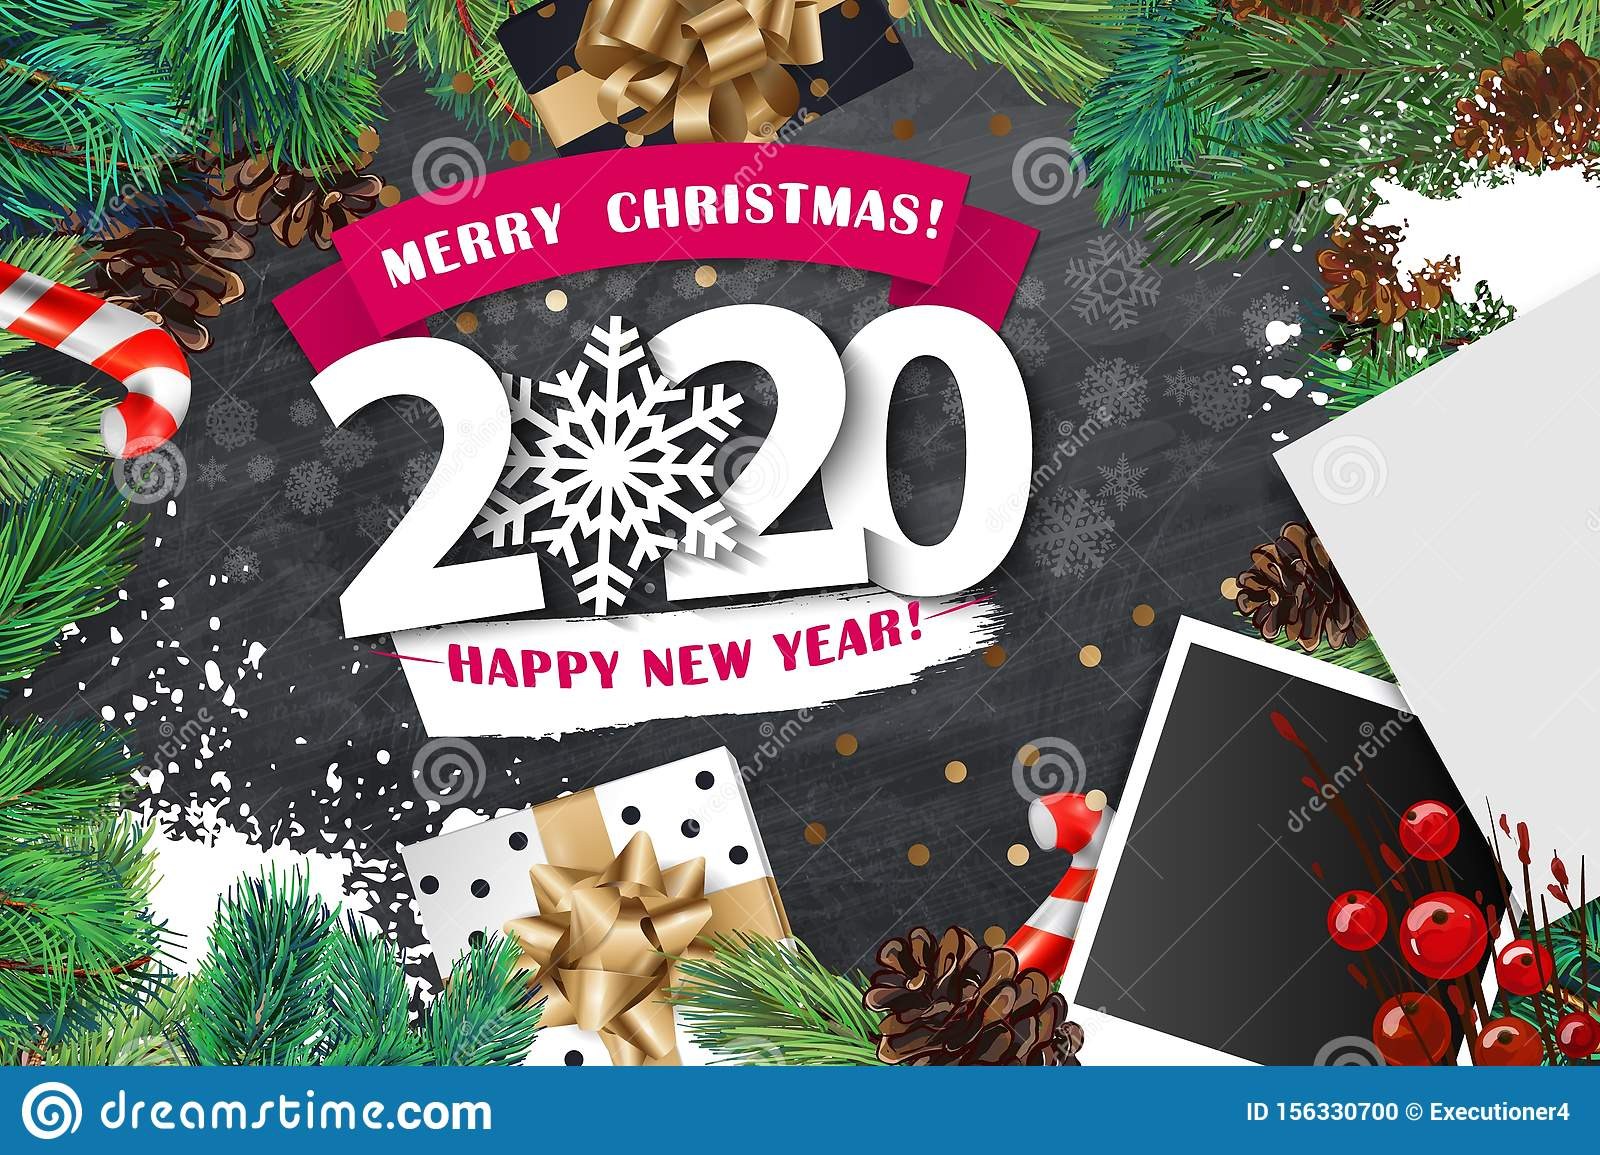 Christmas List 2020.2020 Merry Christmas And Happy New Year Banner With White